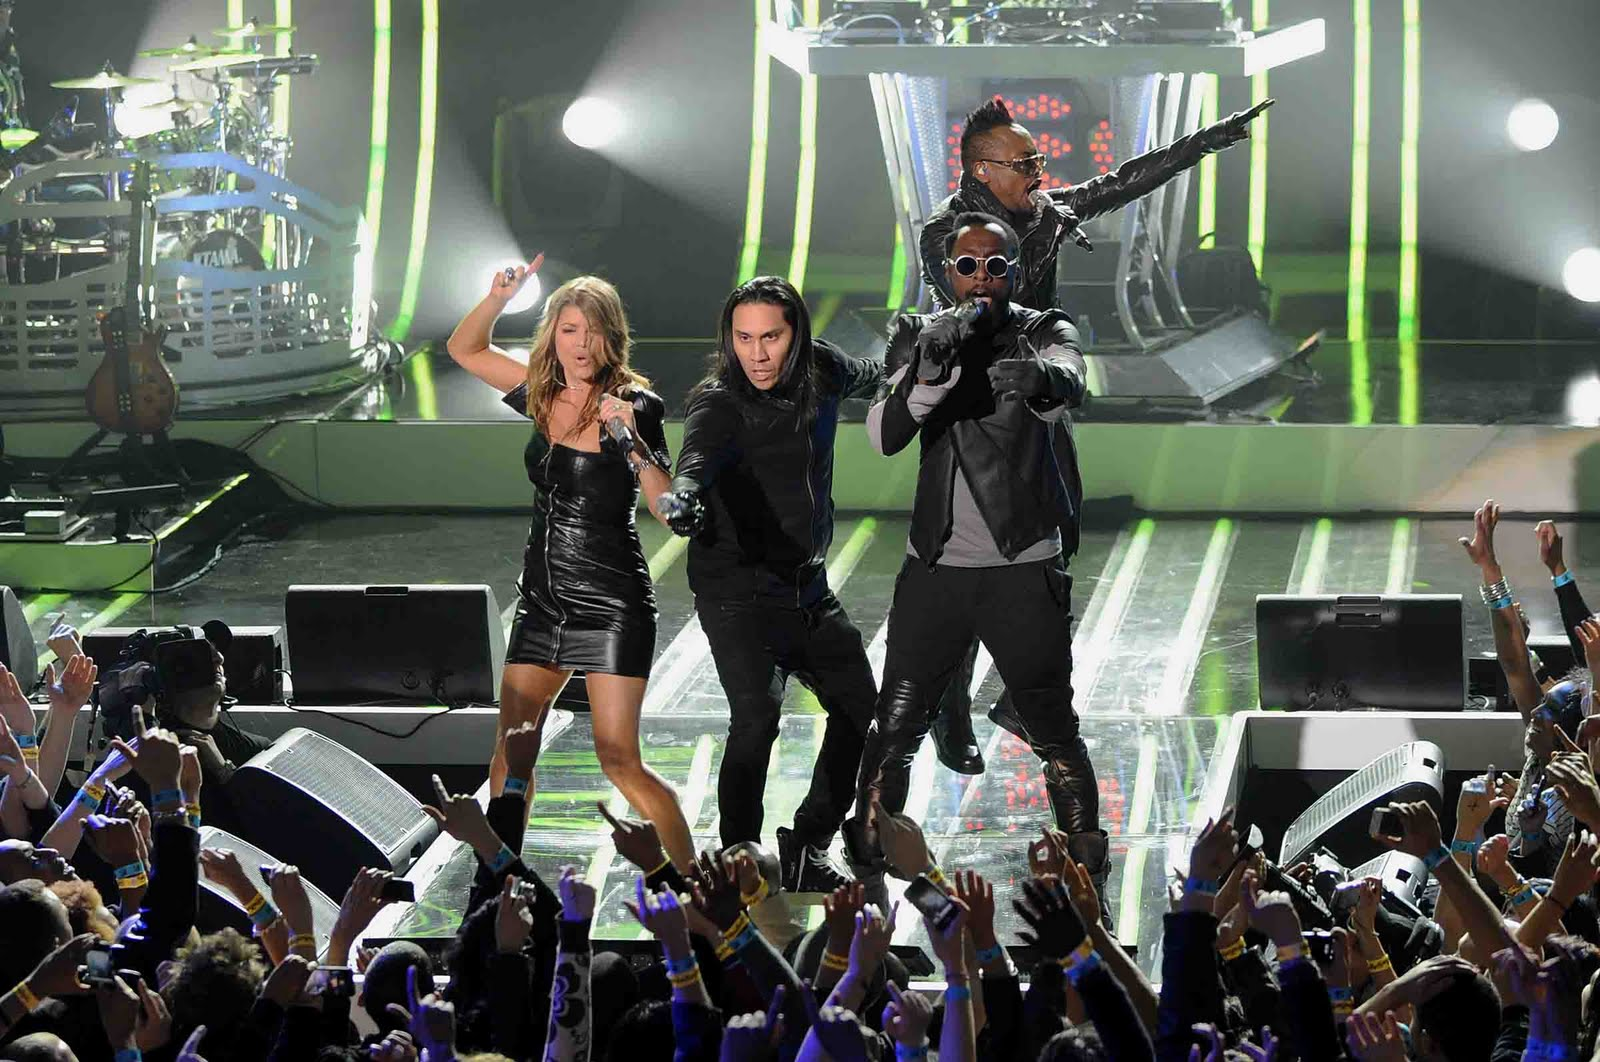 Times Square Gossip: THE BLACK EYED PEAS AND VOLKSWAGEN